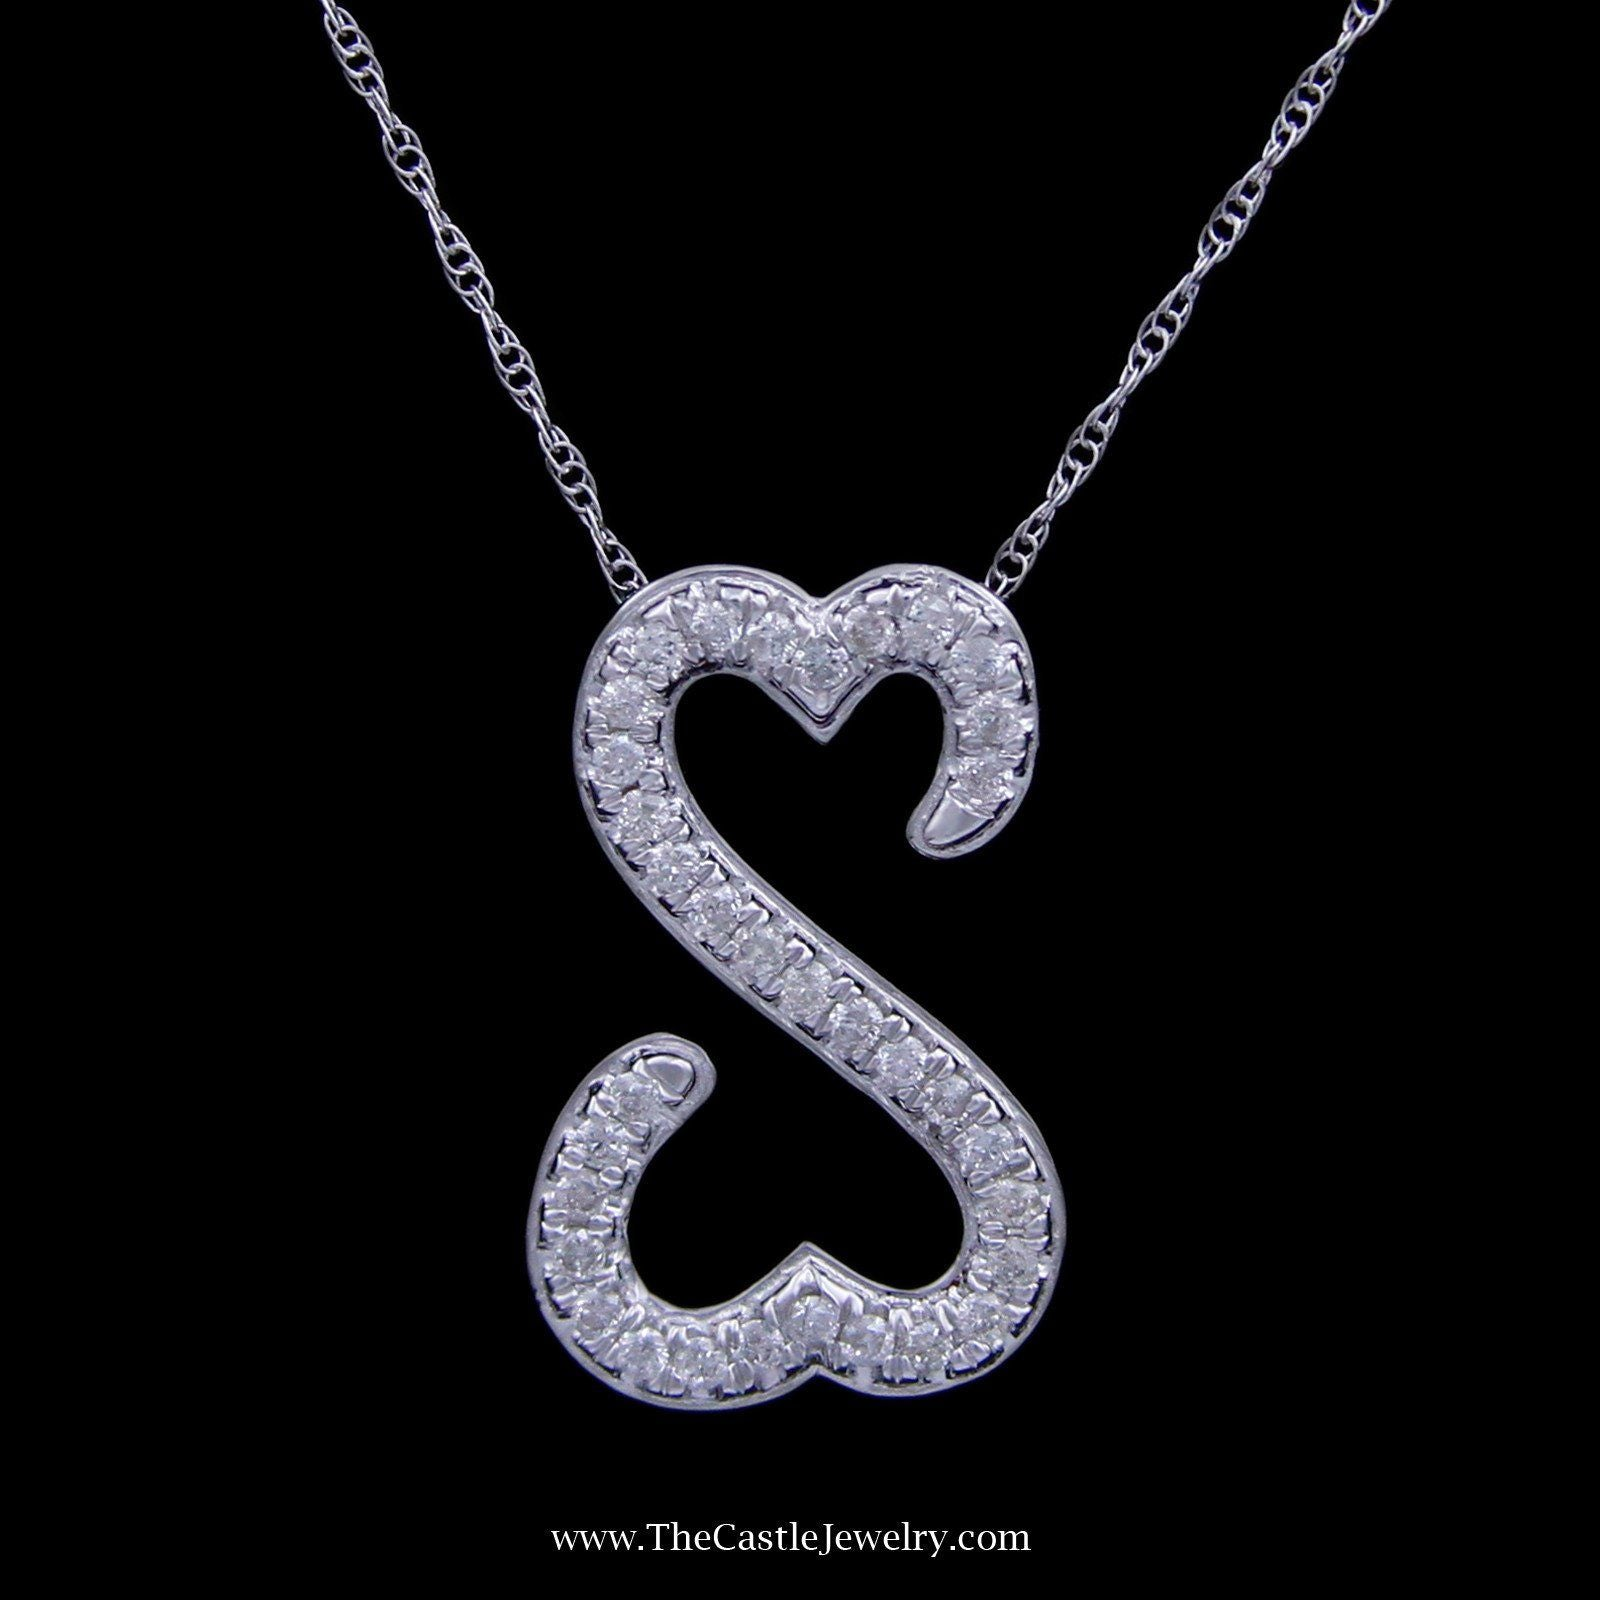 Special! .25cttw Double Heart Round Brilliant Cut Diamond Pendant Crafted in 10k White Gold-0